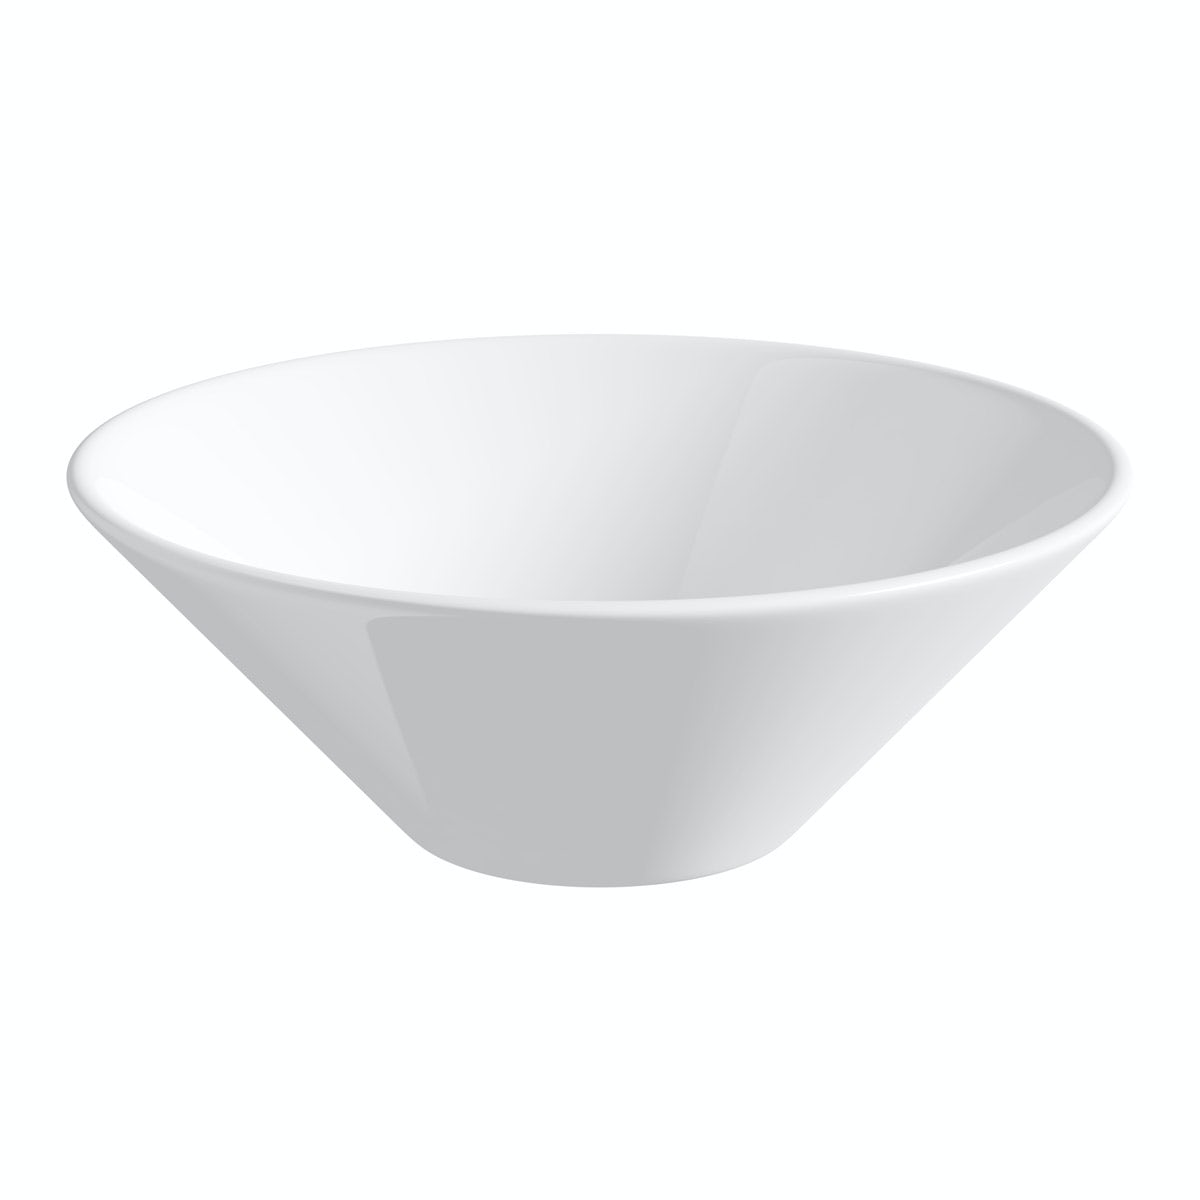 Orchard Erie countertop basin 420mm with waste